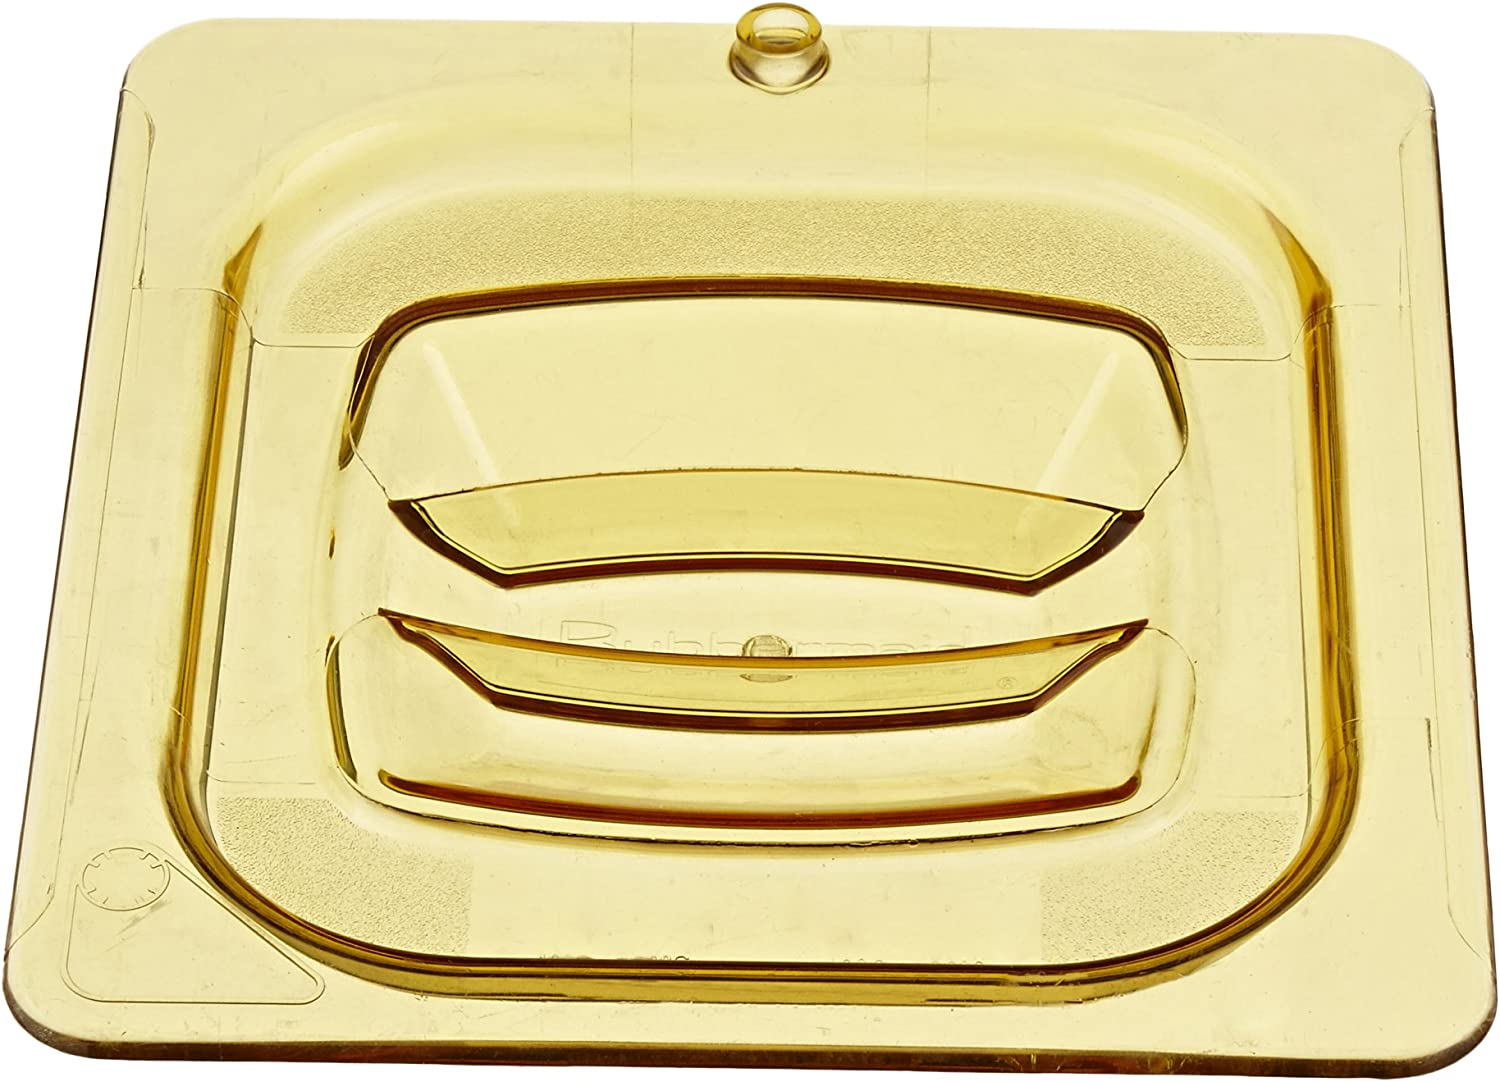 RCP208P23AMB - Hot Food Pan Covers 6 Limited time cheap sale 8w X Amber 8d 7 3 Ranking TOP4